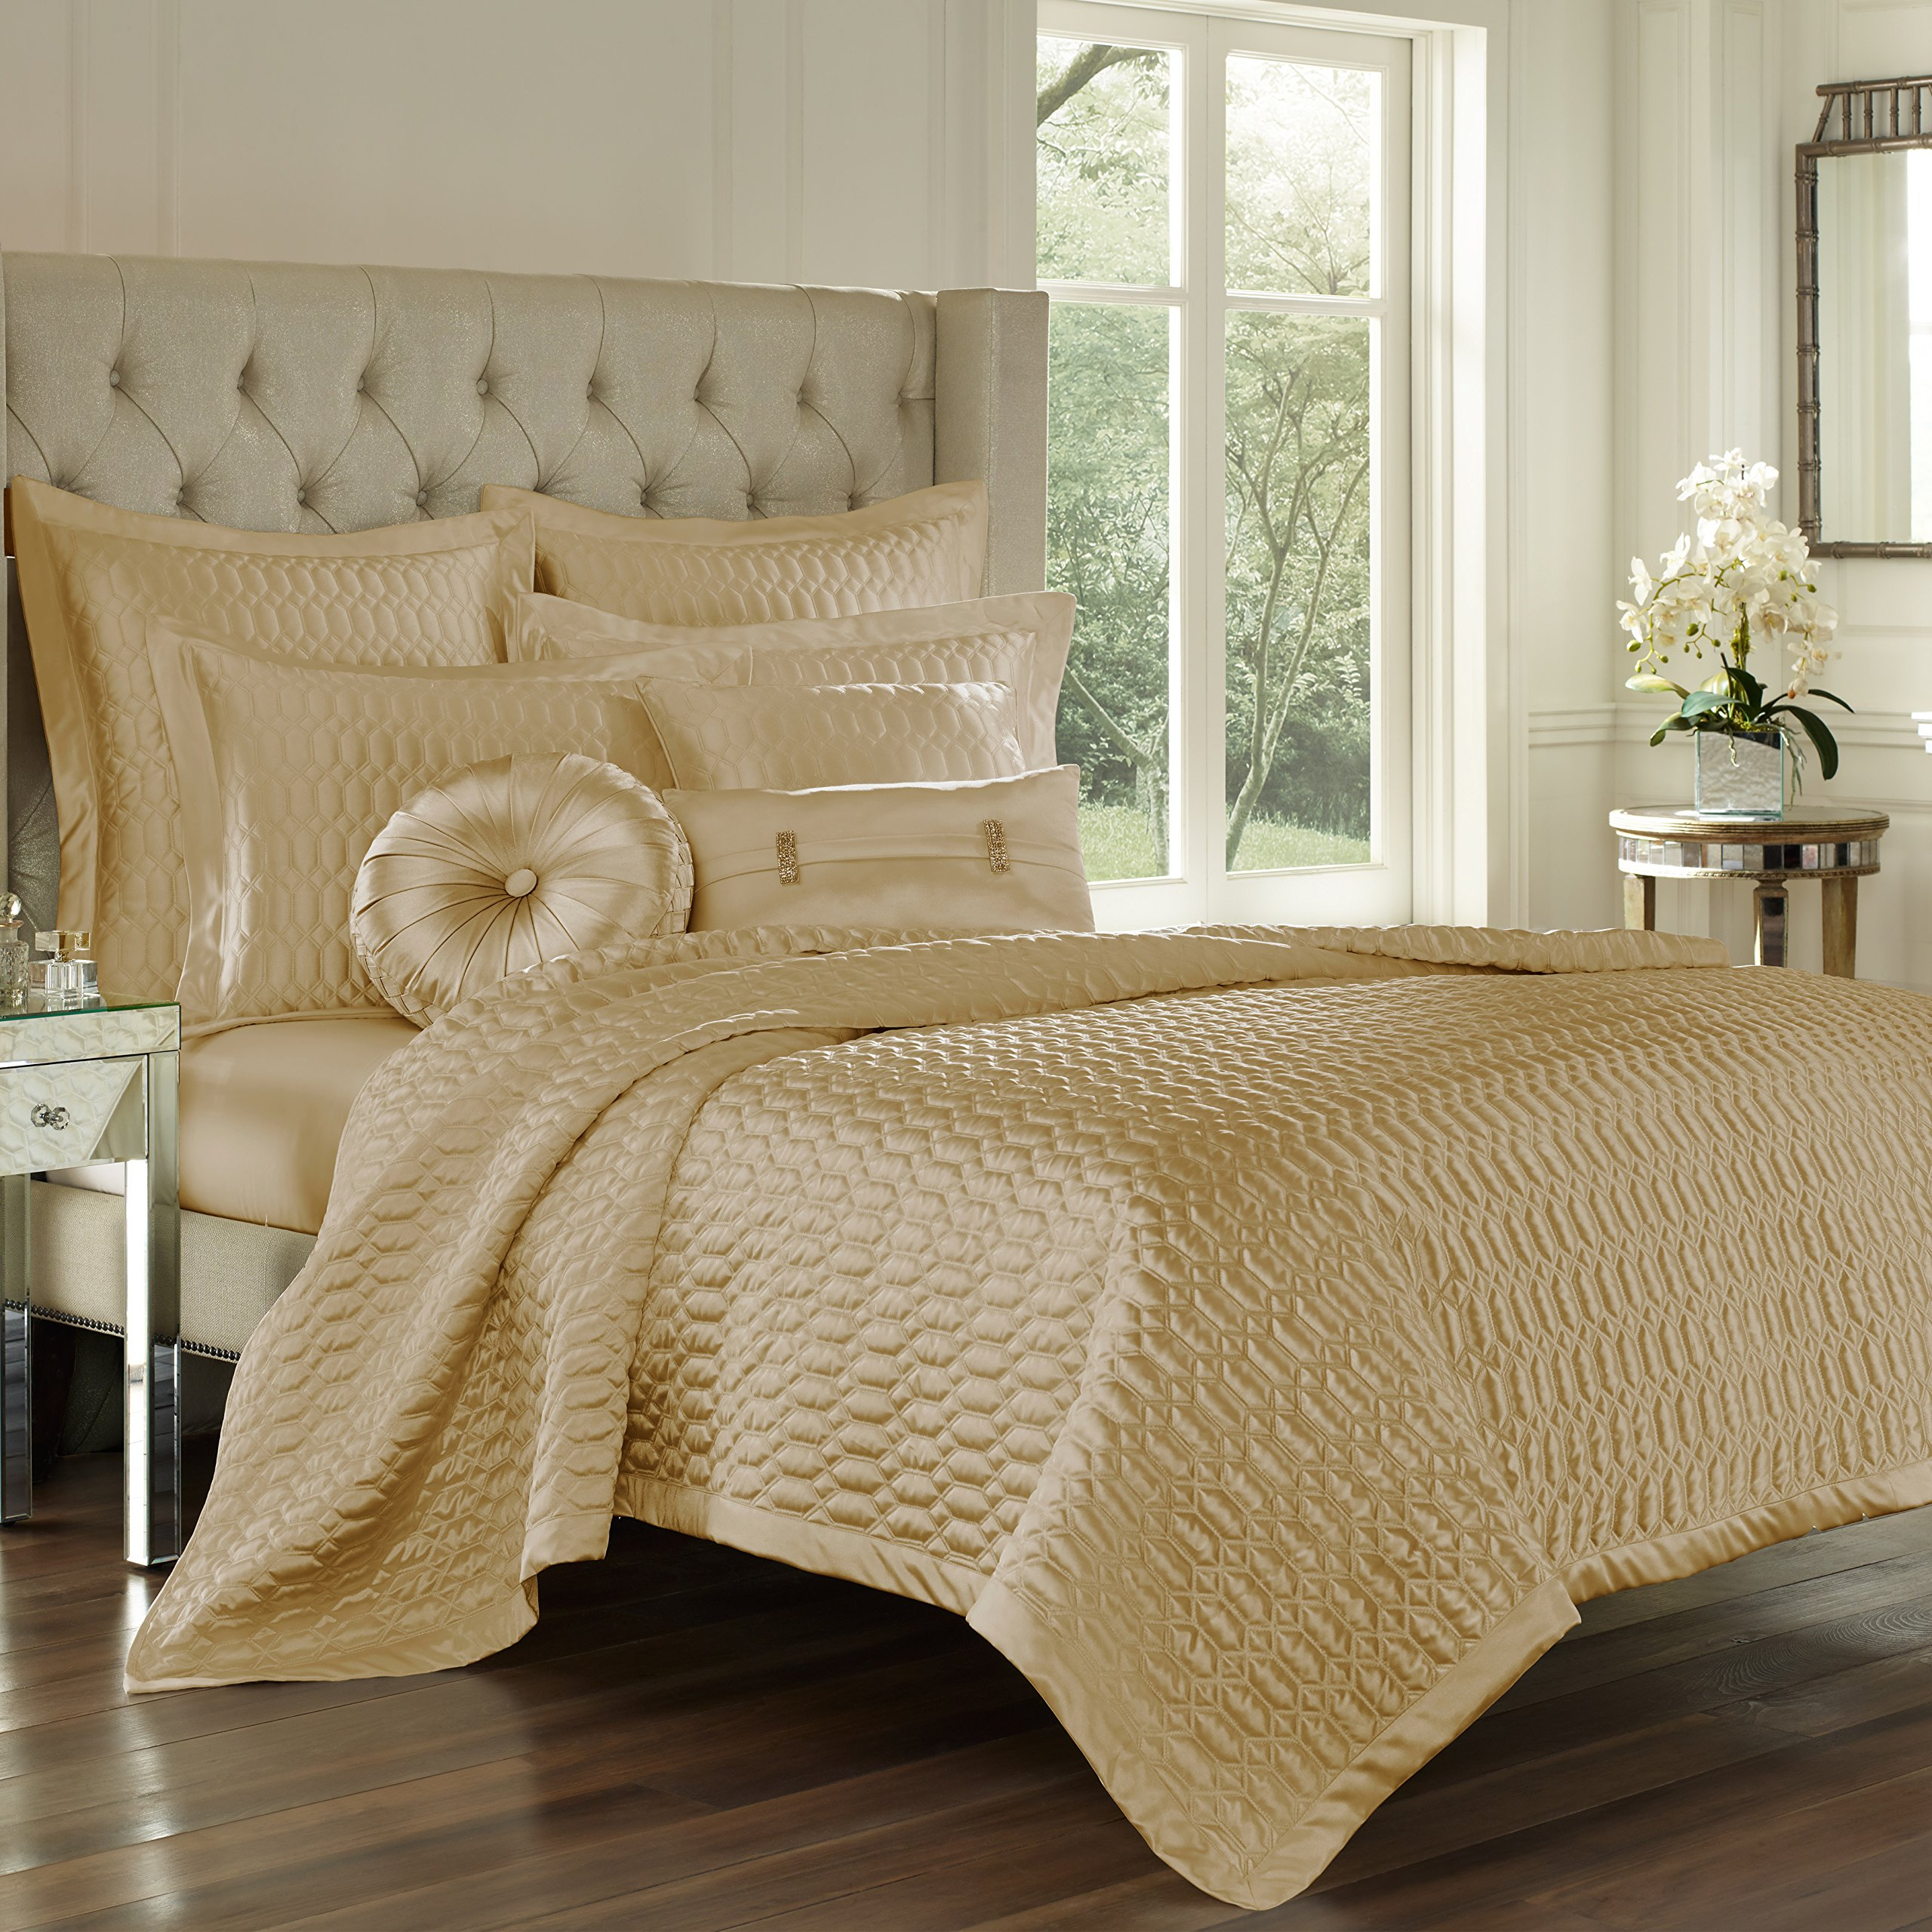 Five Queens Court Saranda Satin Geometric Quilted Coverlet King, Gold by Five Queens Court